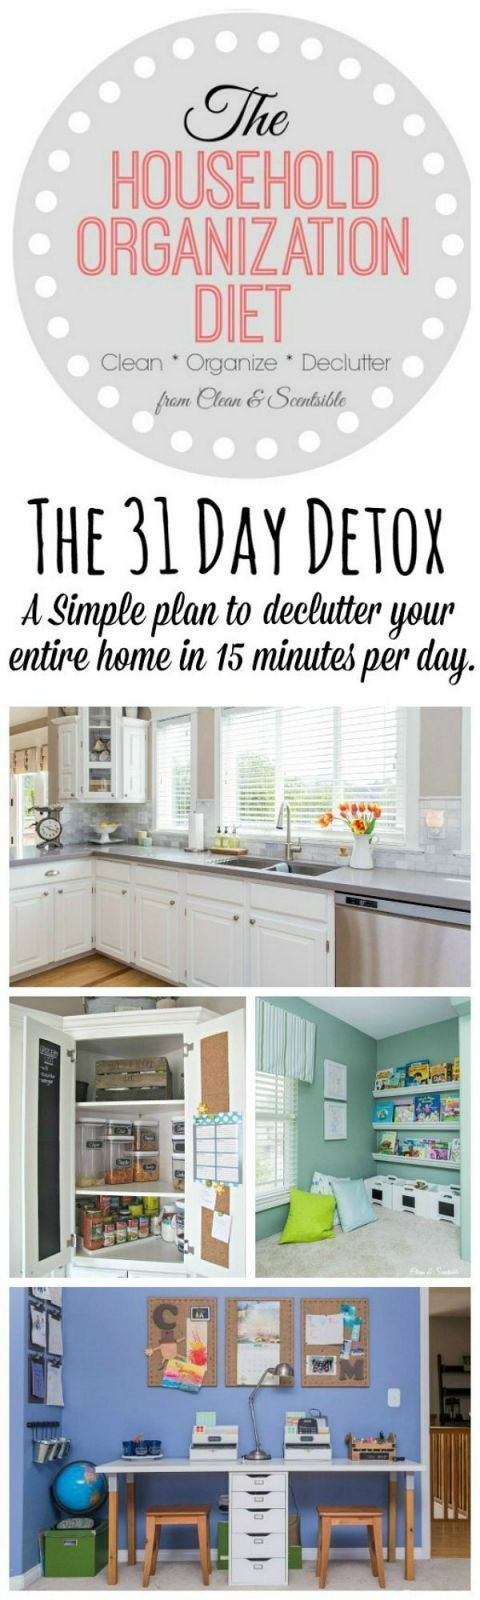 Easy 31 Day plan to declutter your home in 15 minutes per day! #declutteryourhome #tipstodeclutteryourhome